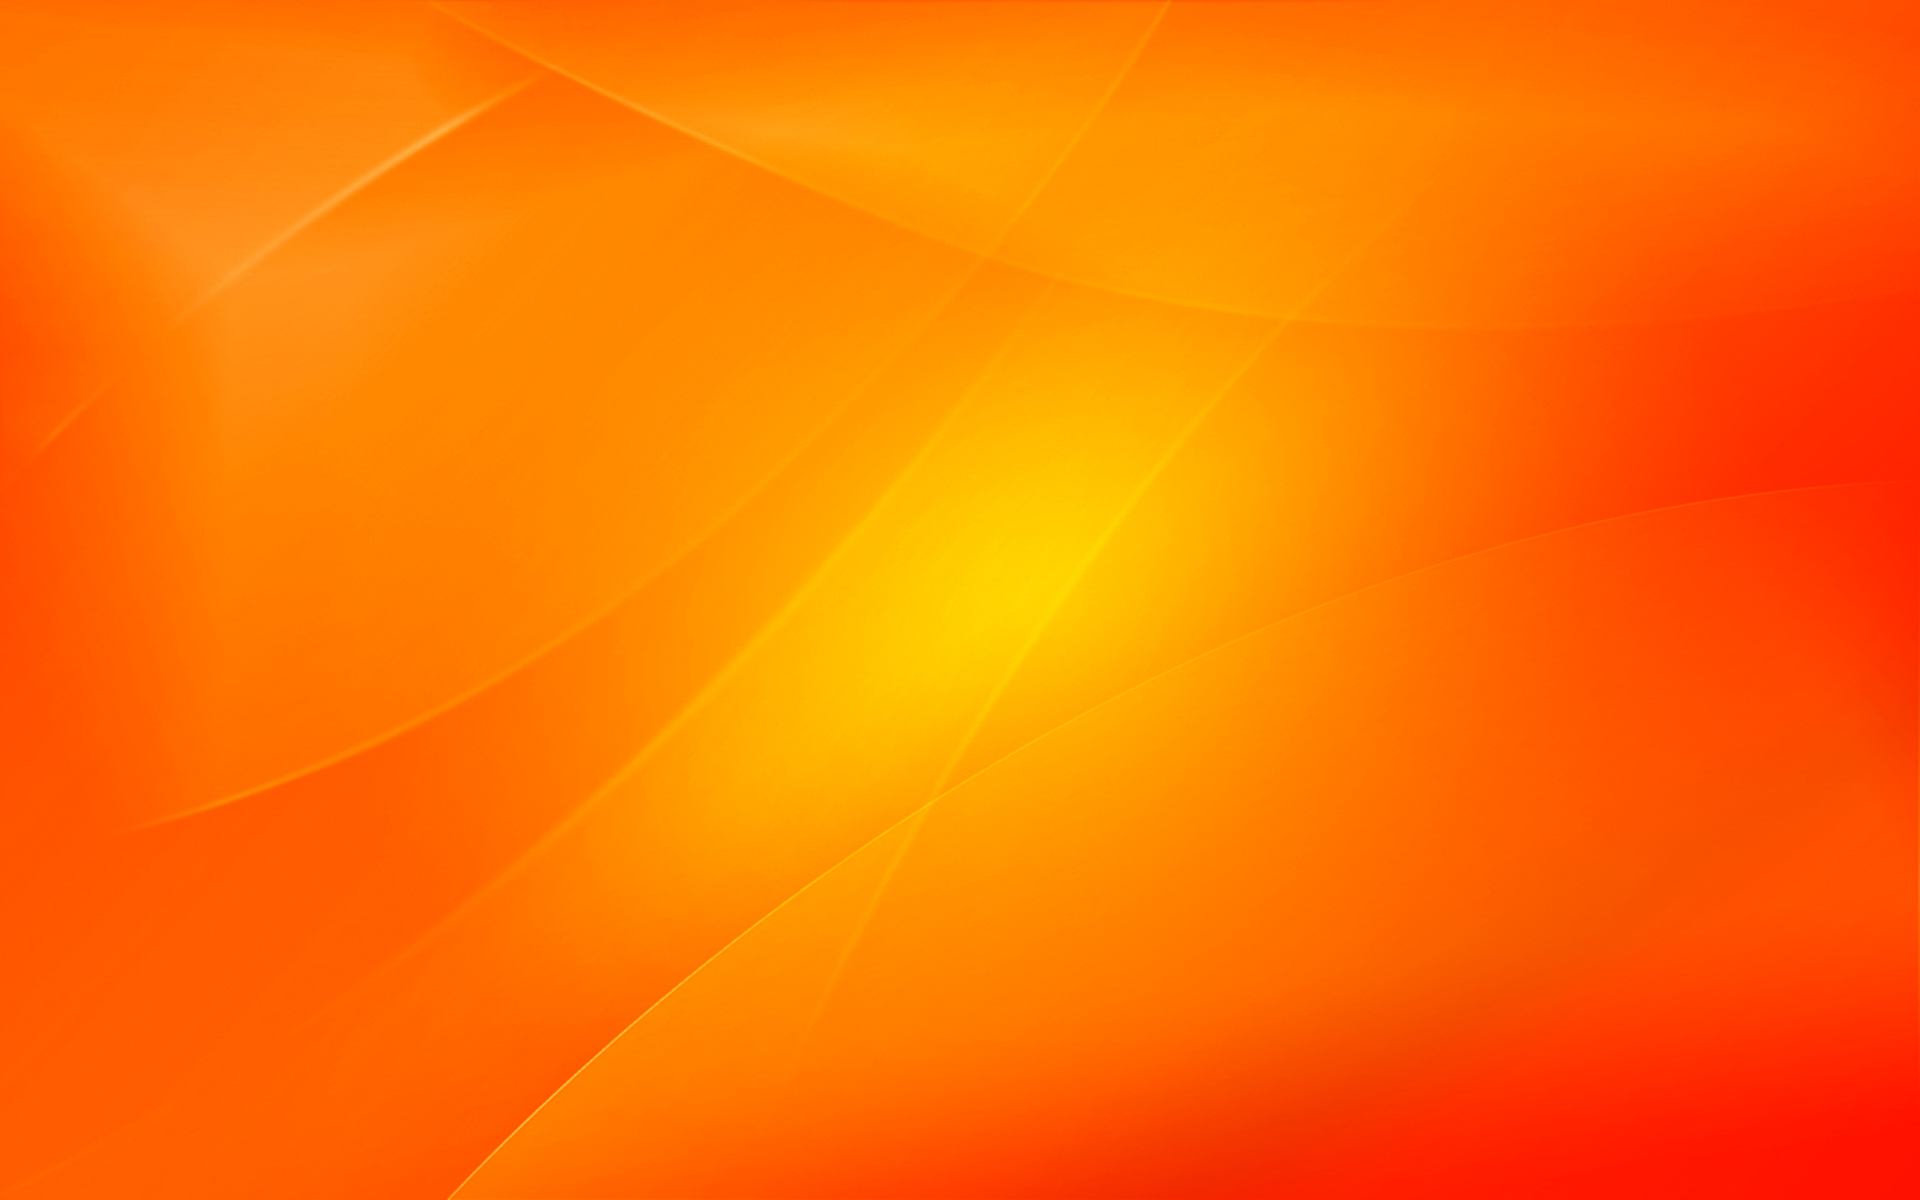 Orange Background Wallpaper 1920x1200 Orange Background 1920x1200